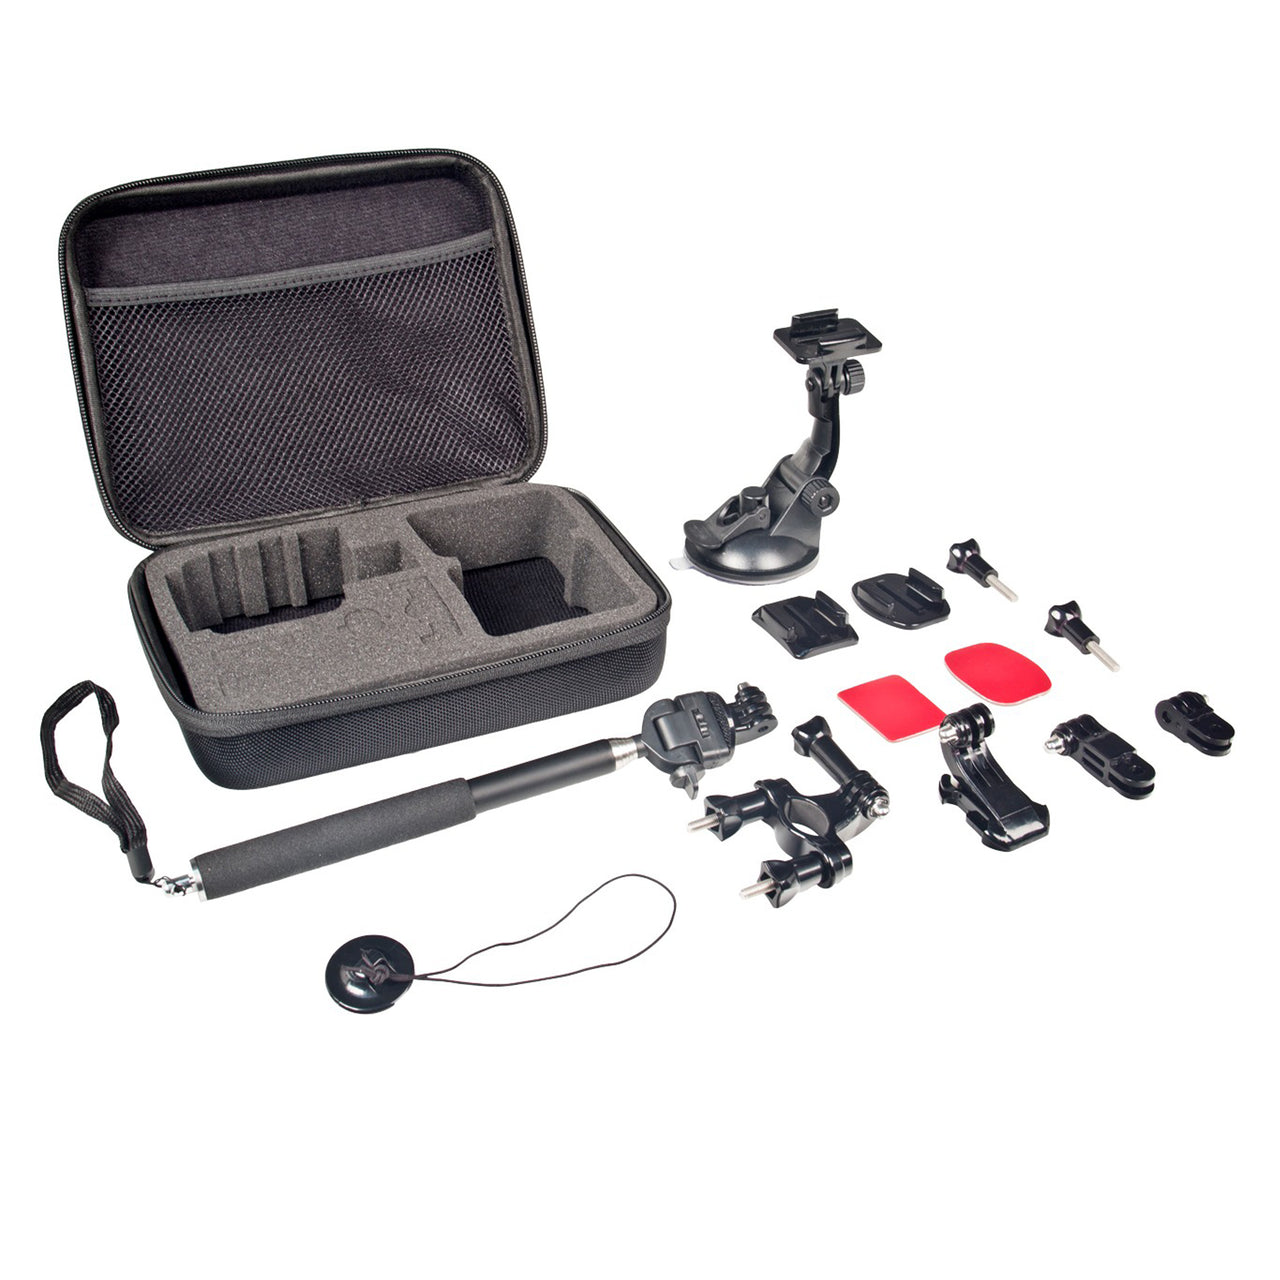 Xtreme Action Series 6-in-1 Sports Bundle Camcorder Accessory Kit for GoPro